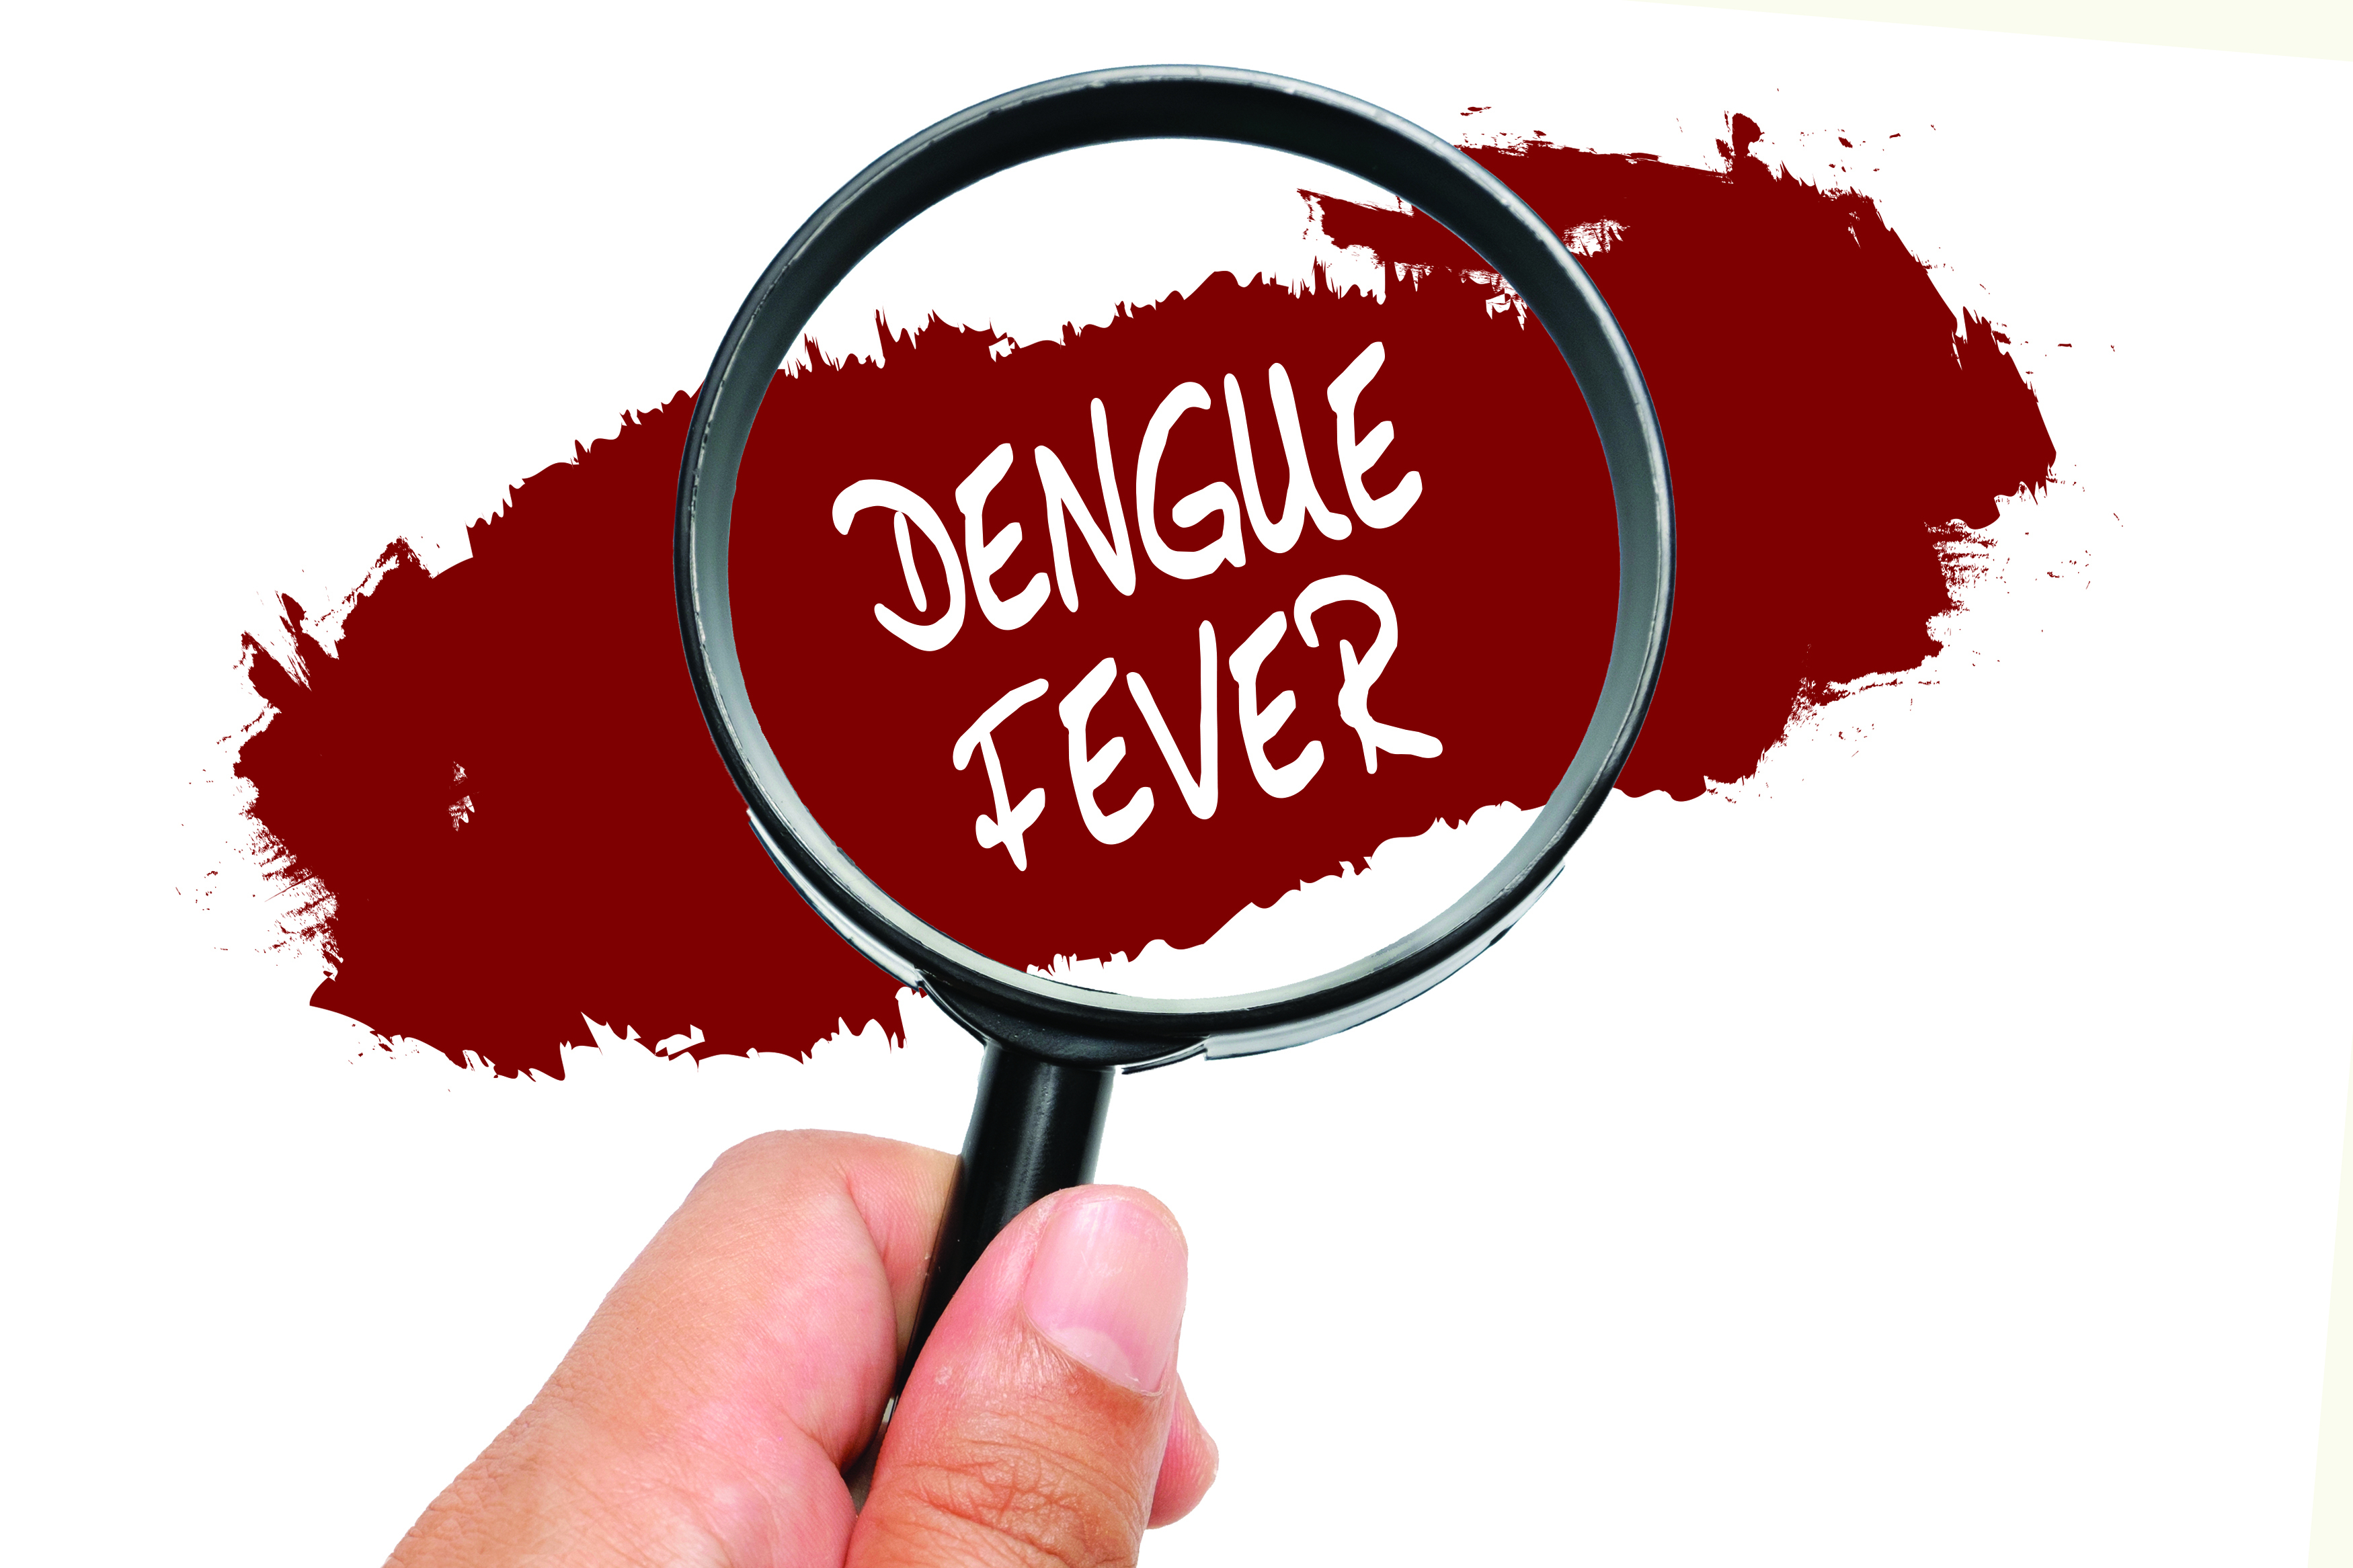 dengue fever in children